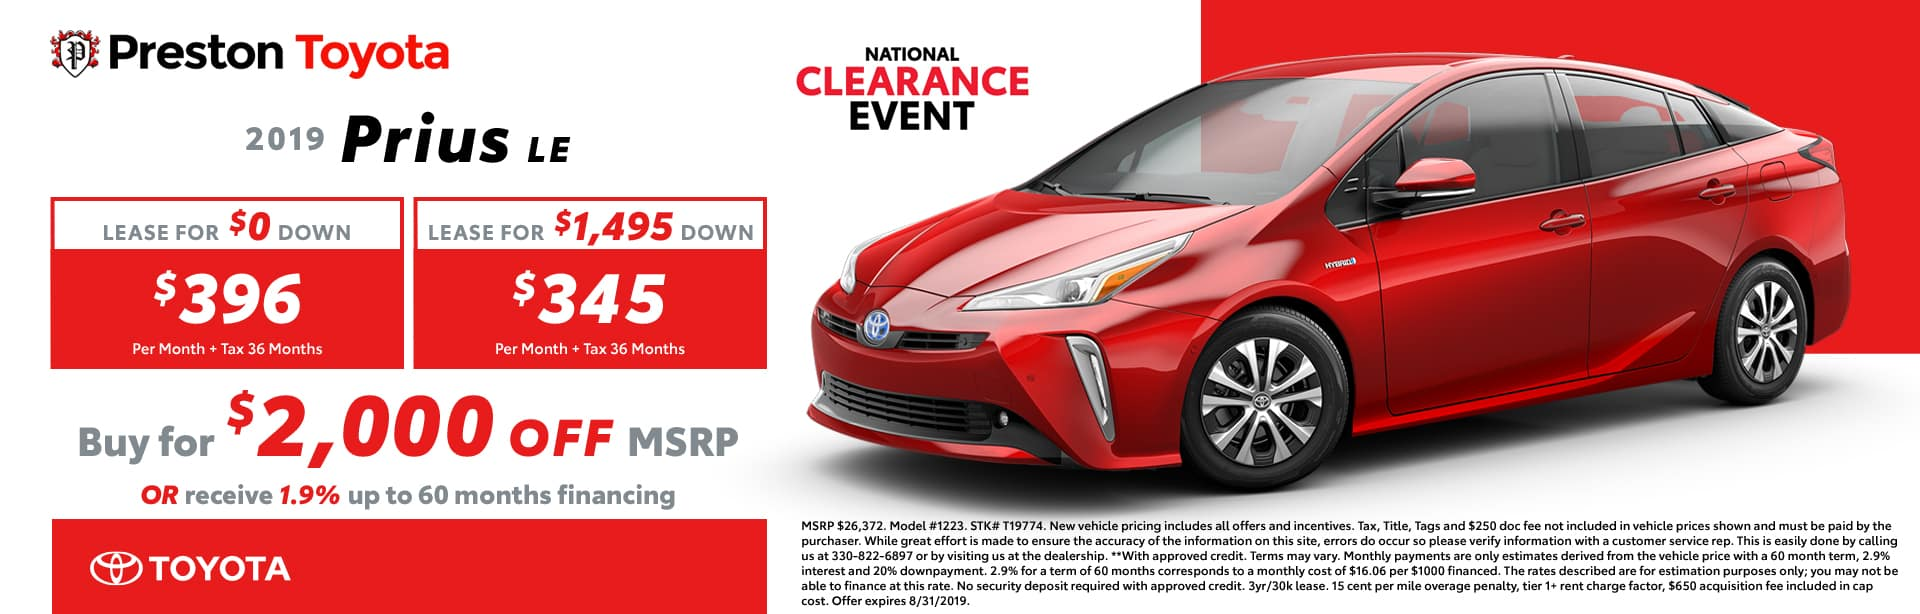 August special on the 2019 Prius